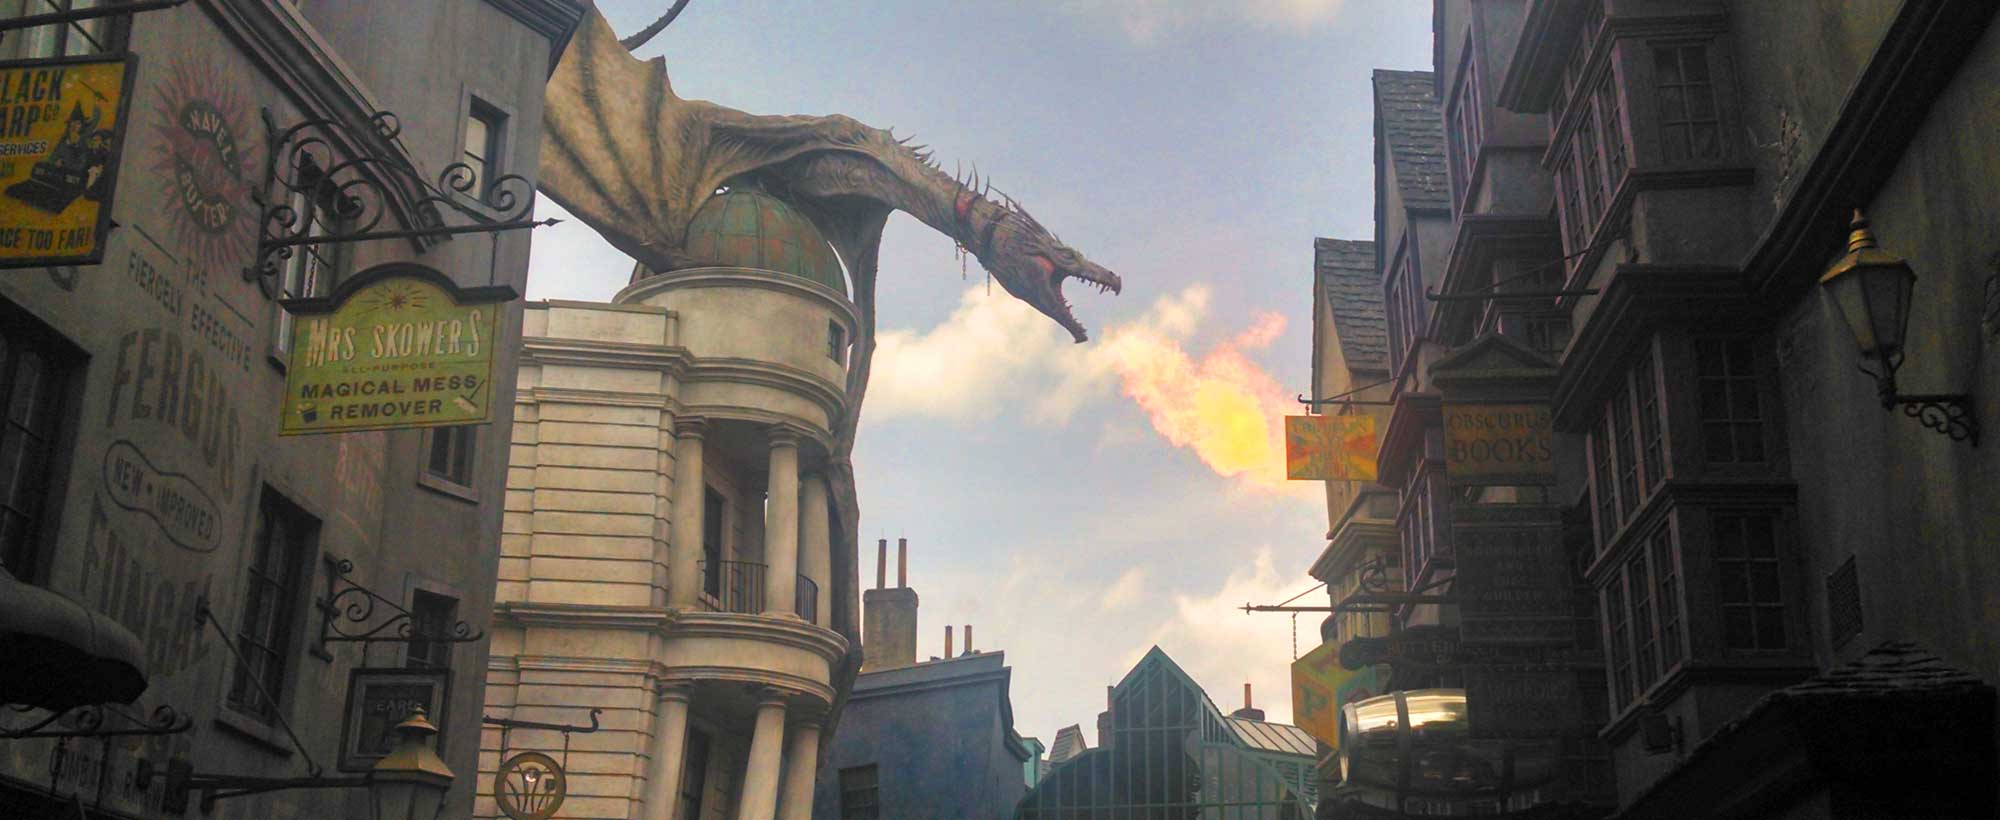 The dragon on top of Gringotts Bank